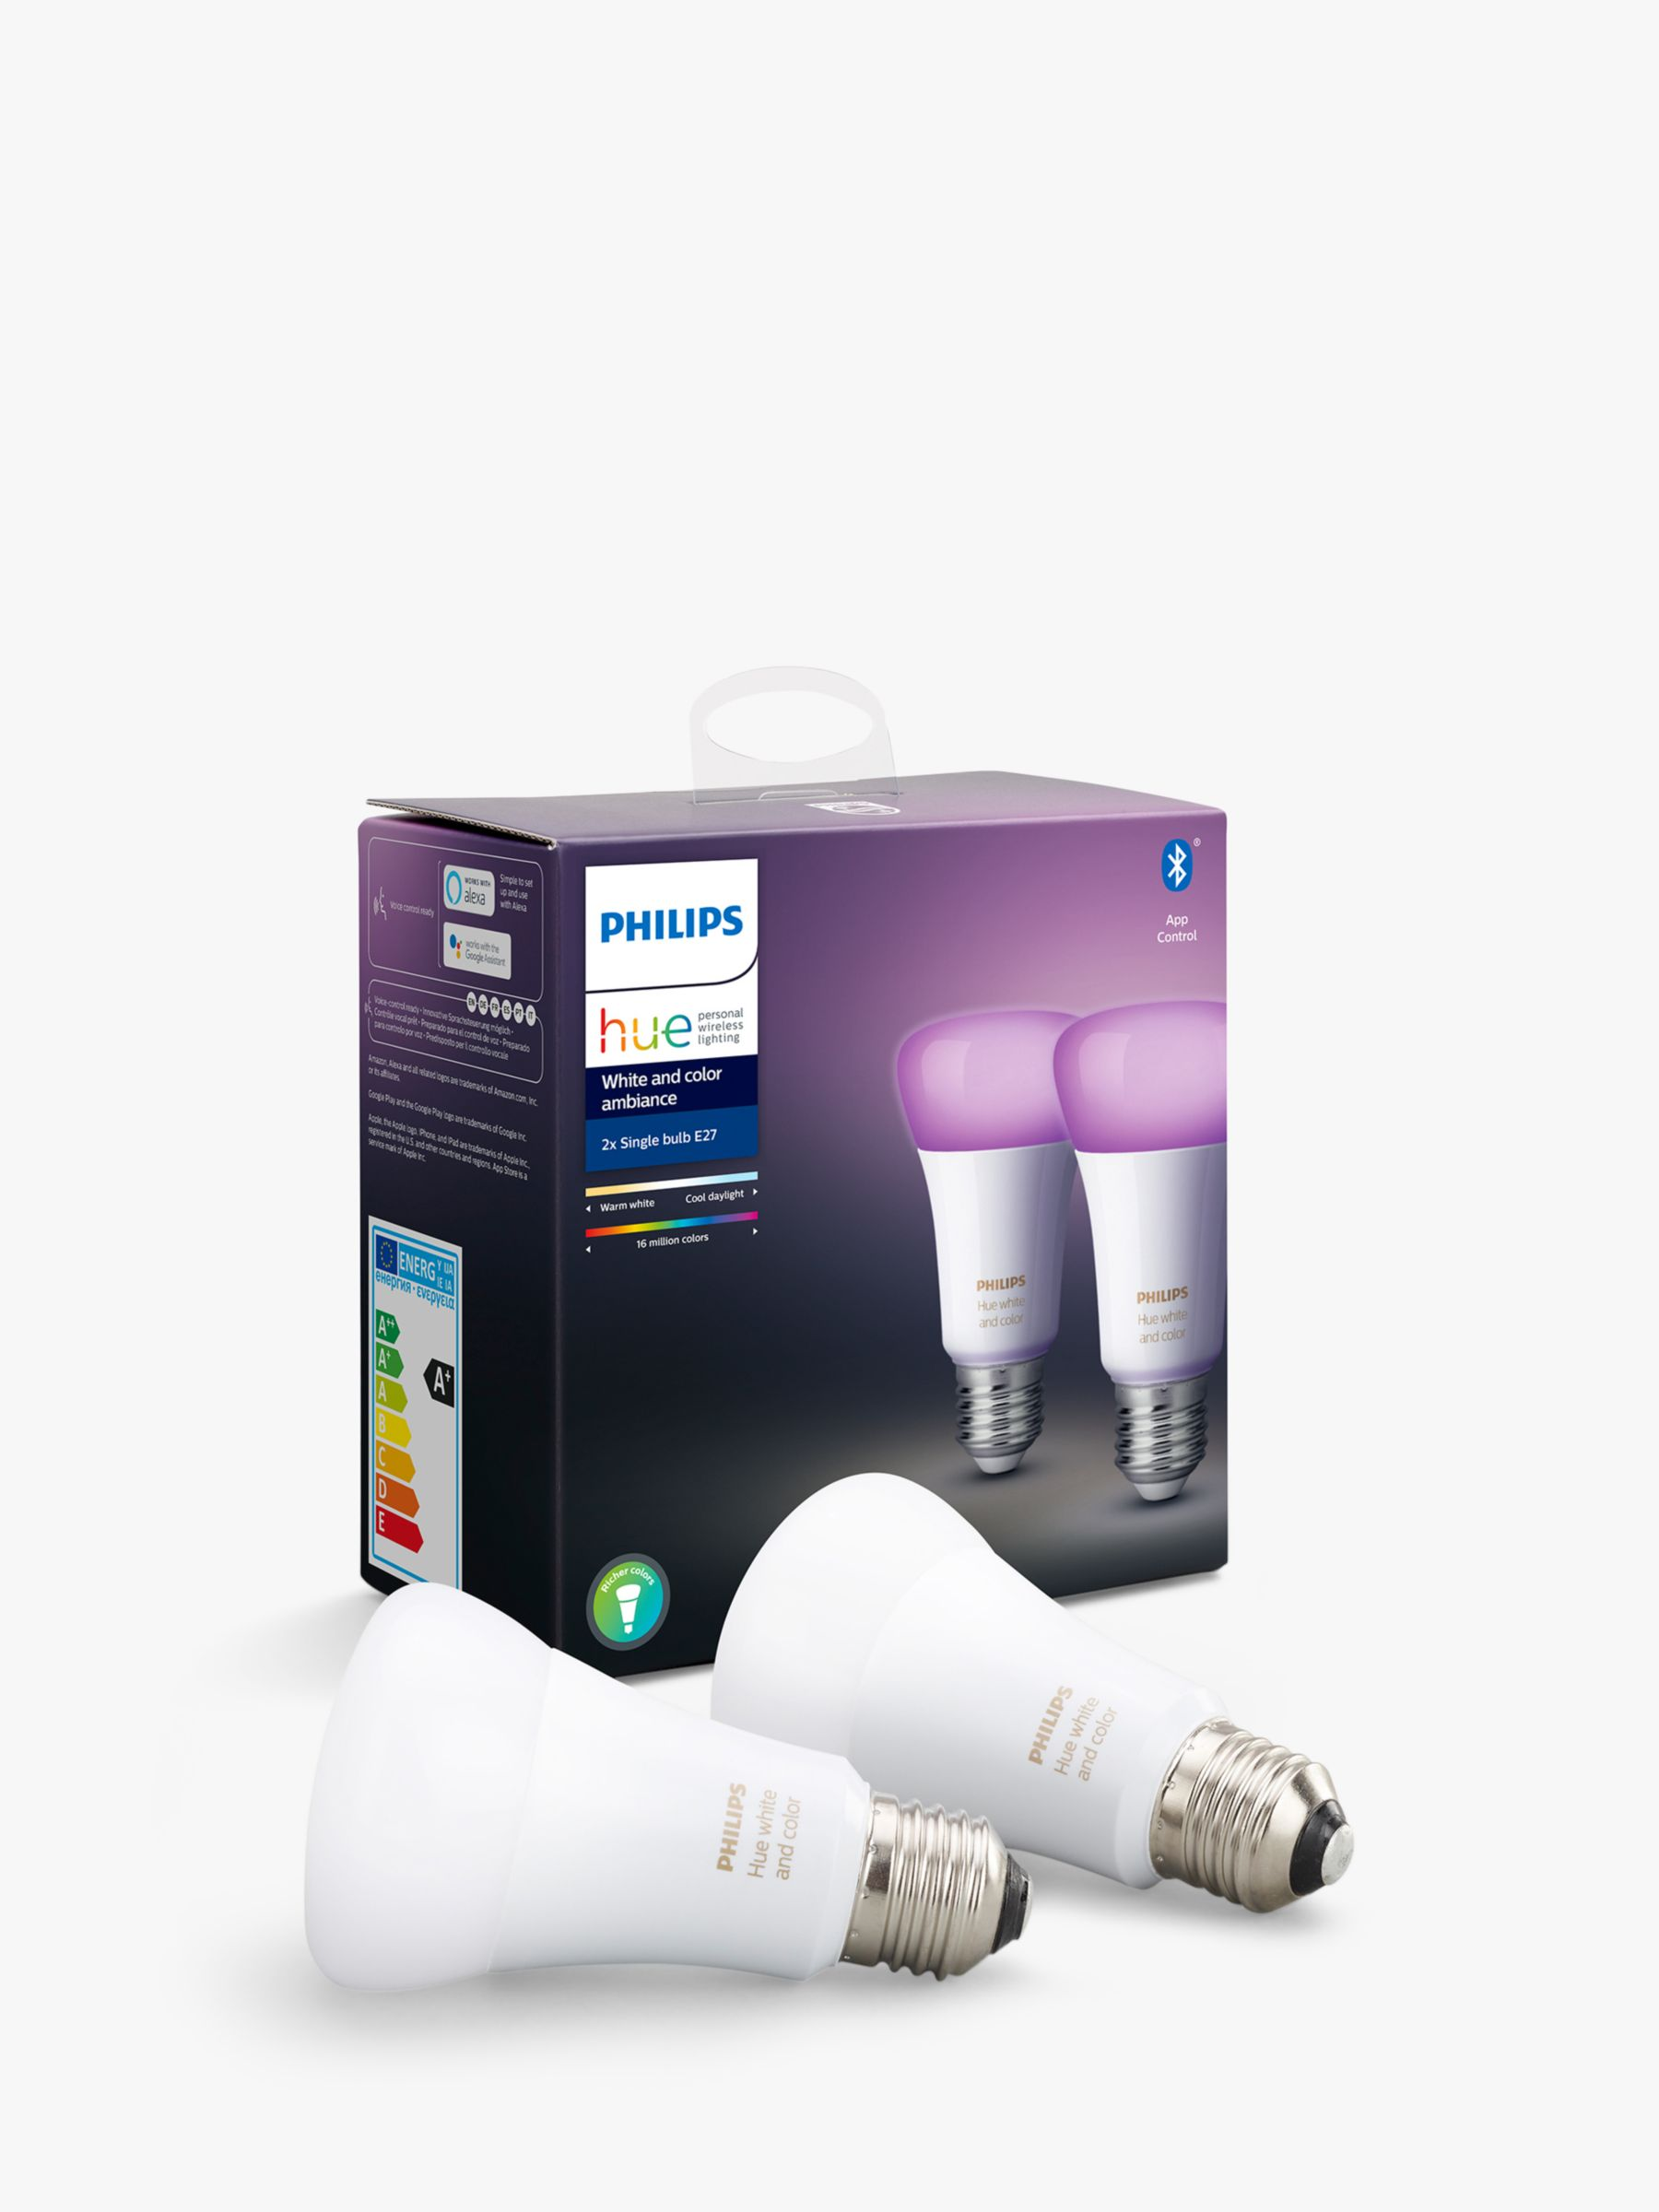 Philips Philips Hue White and Colour Ambiance Wireless Lighting LED Colour Changing Light Bulb with Bluetooth, 9W A60 E27 Edison Screw Cap Bulb, Pack of 2